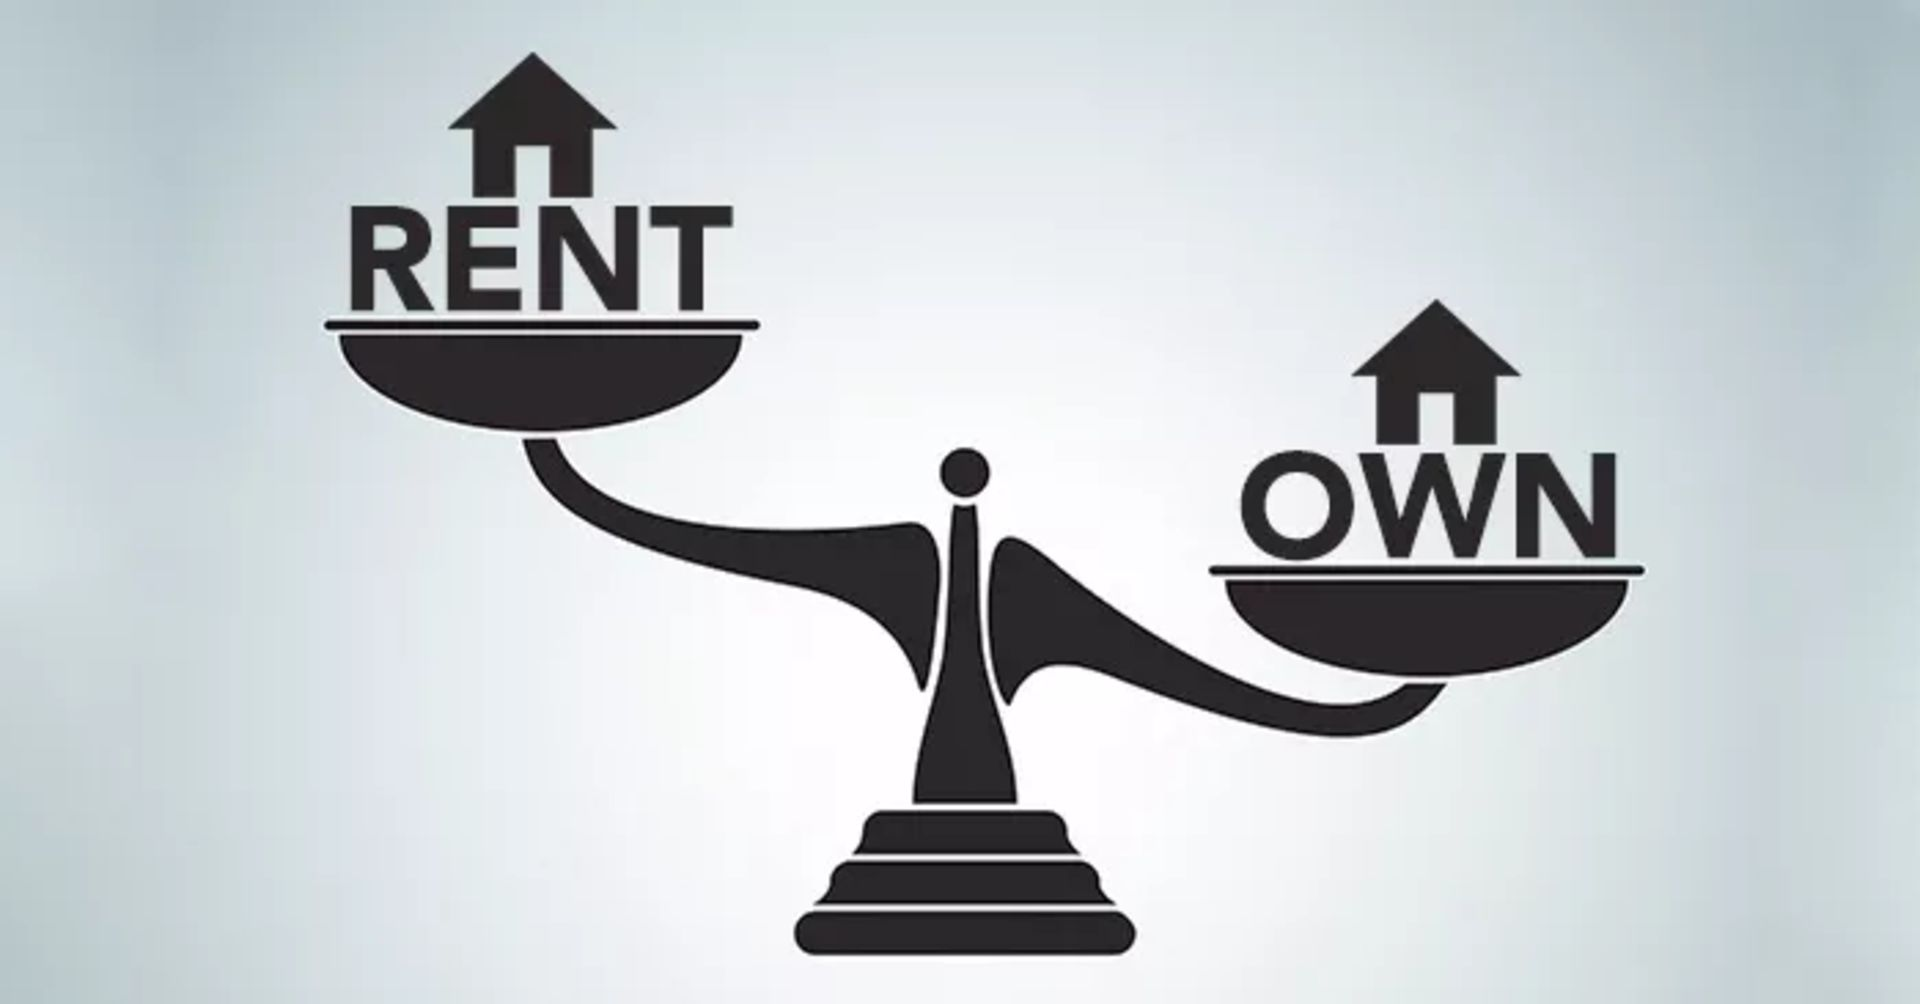 83 Percent of Americans Prefer Owning Over Renting